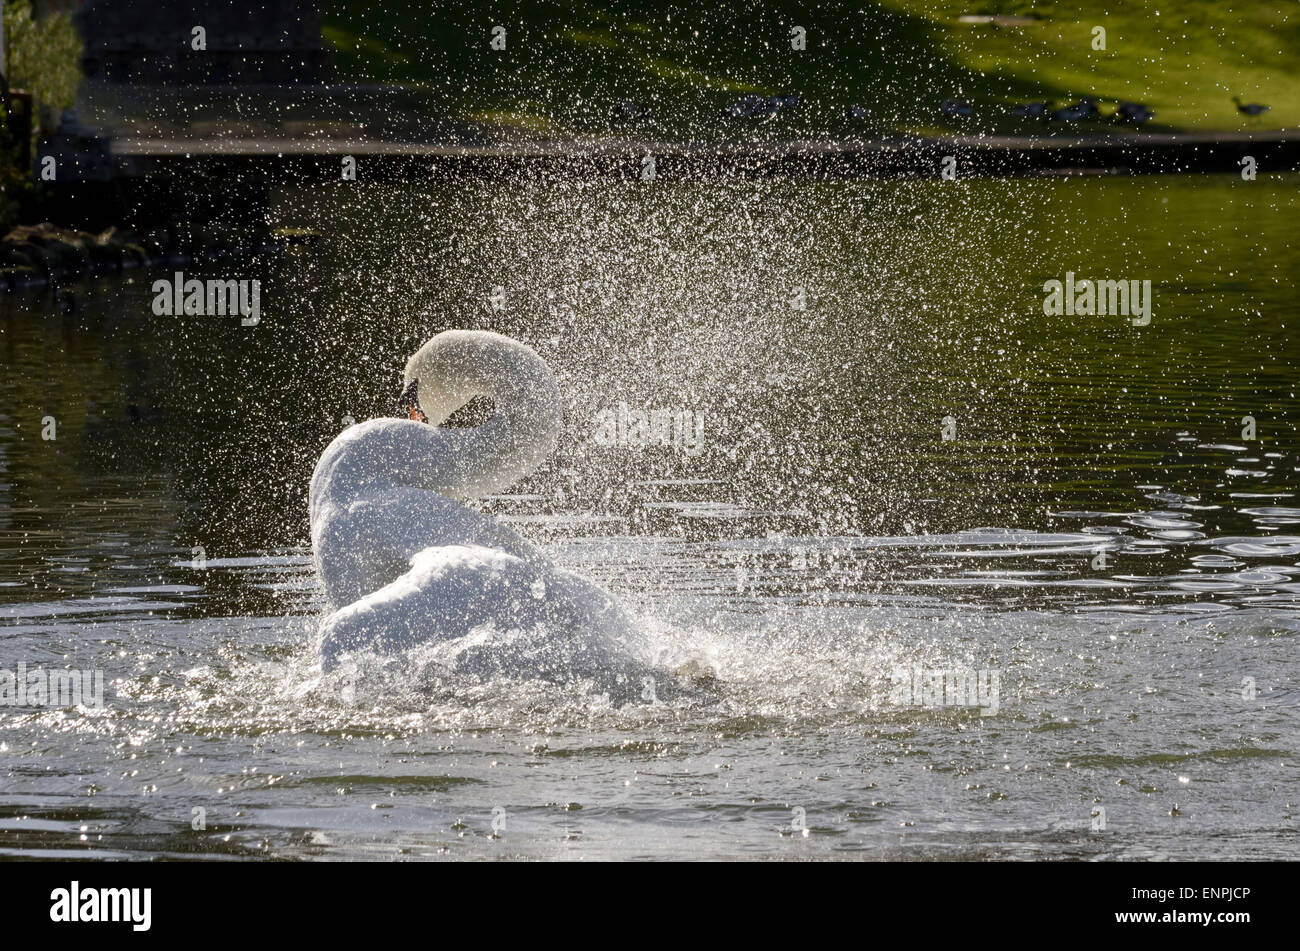 Swan bathes in pond throwing out water spray and droplets which are illuminated by the sun. - Stock Image